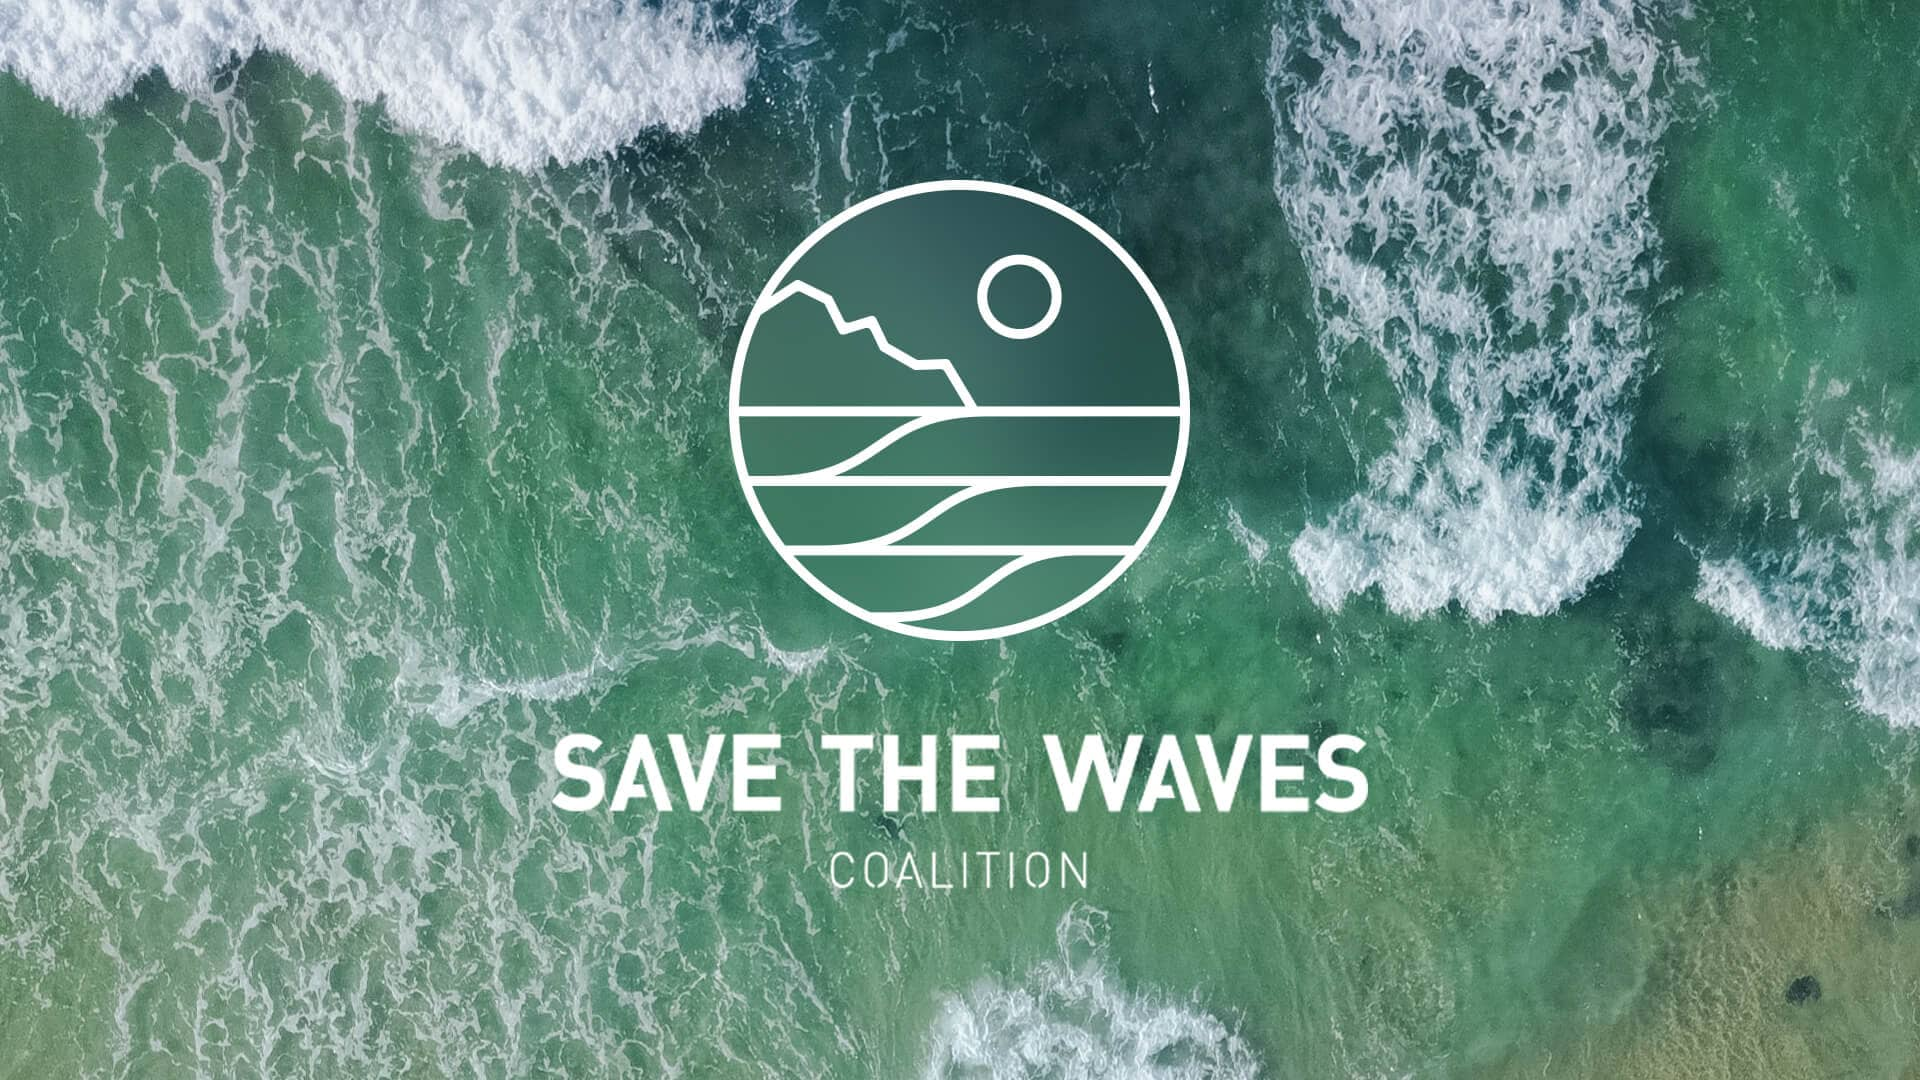 Sprout Teams Up With Save The Waves